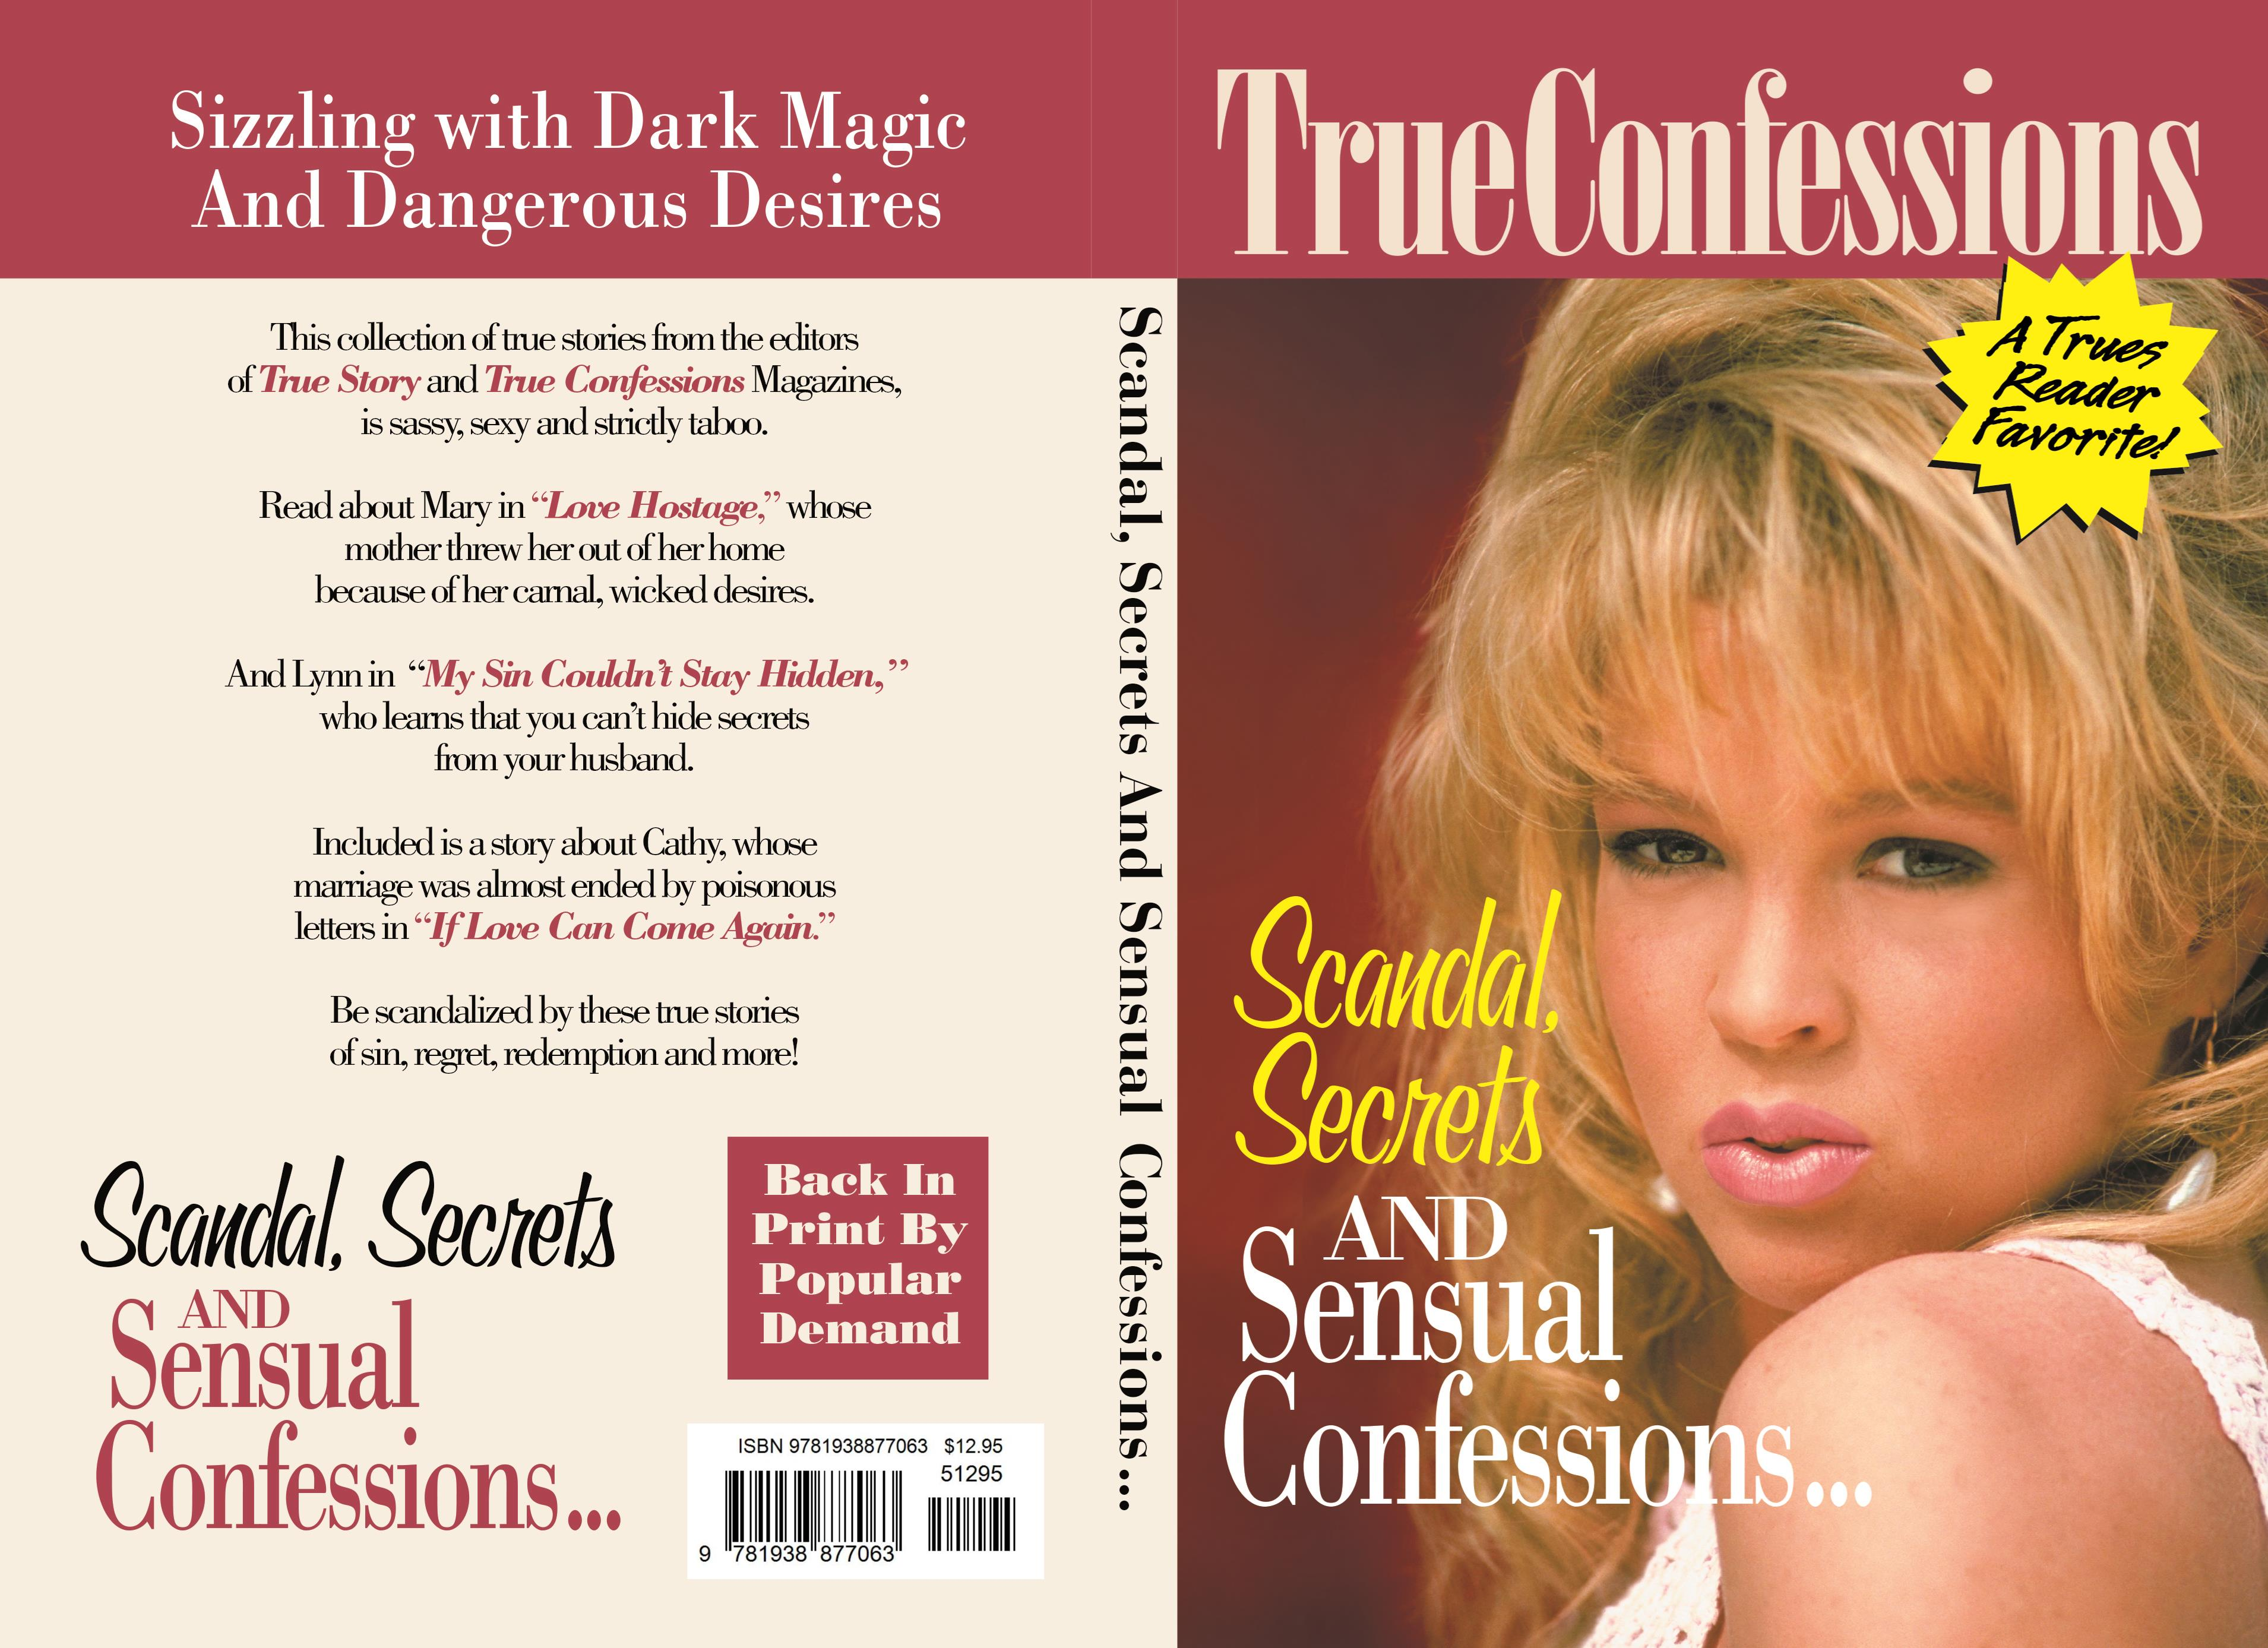 SCANDAL, SECRETS AND SENSUAL CONFESSIONS       by The